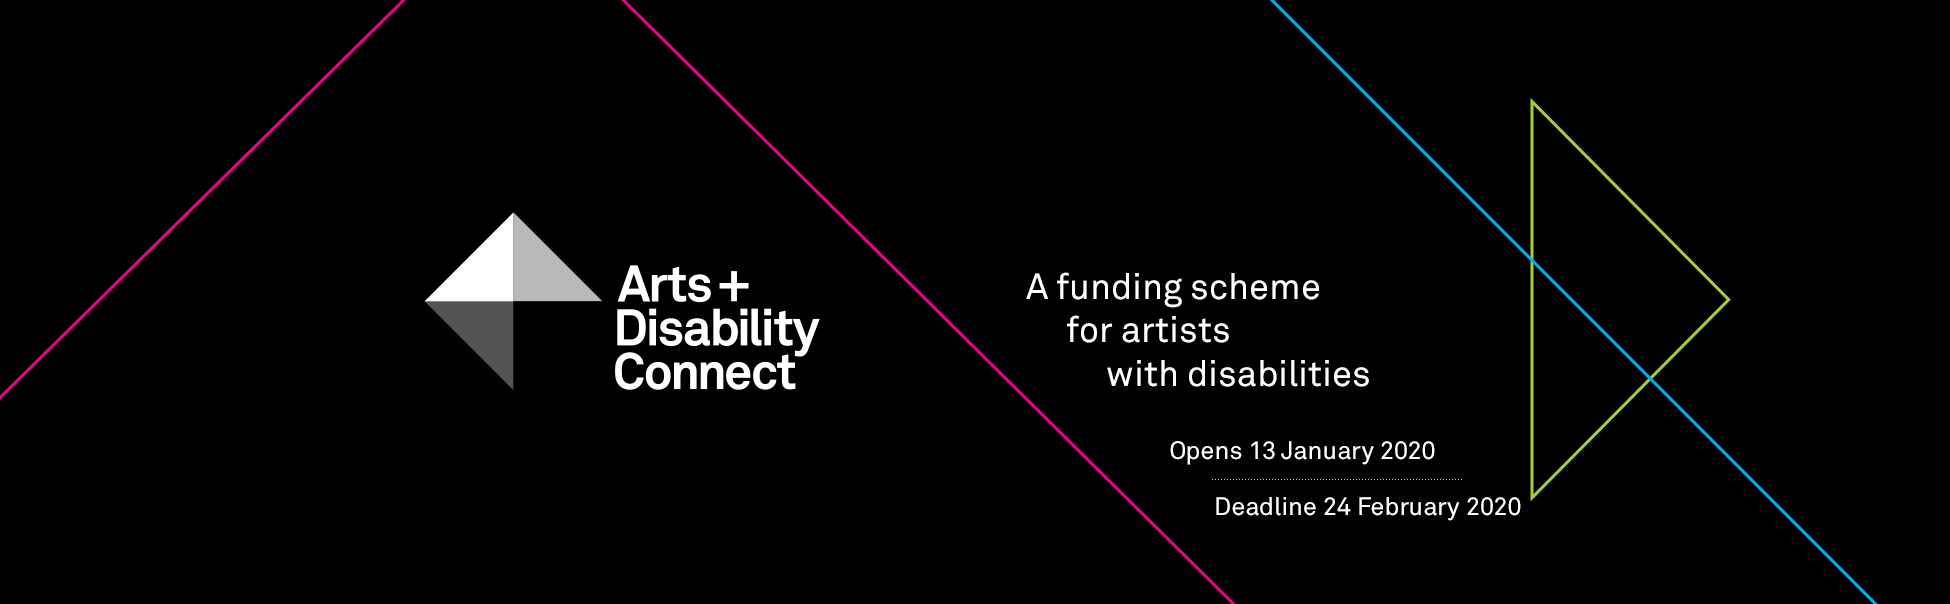 A funding scheme for artists with disabilities. Opens 13 January 2020. Deadline 24 February 2020.